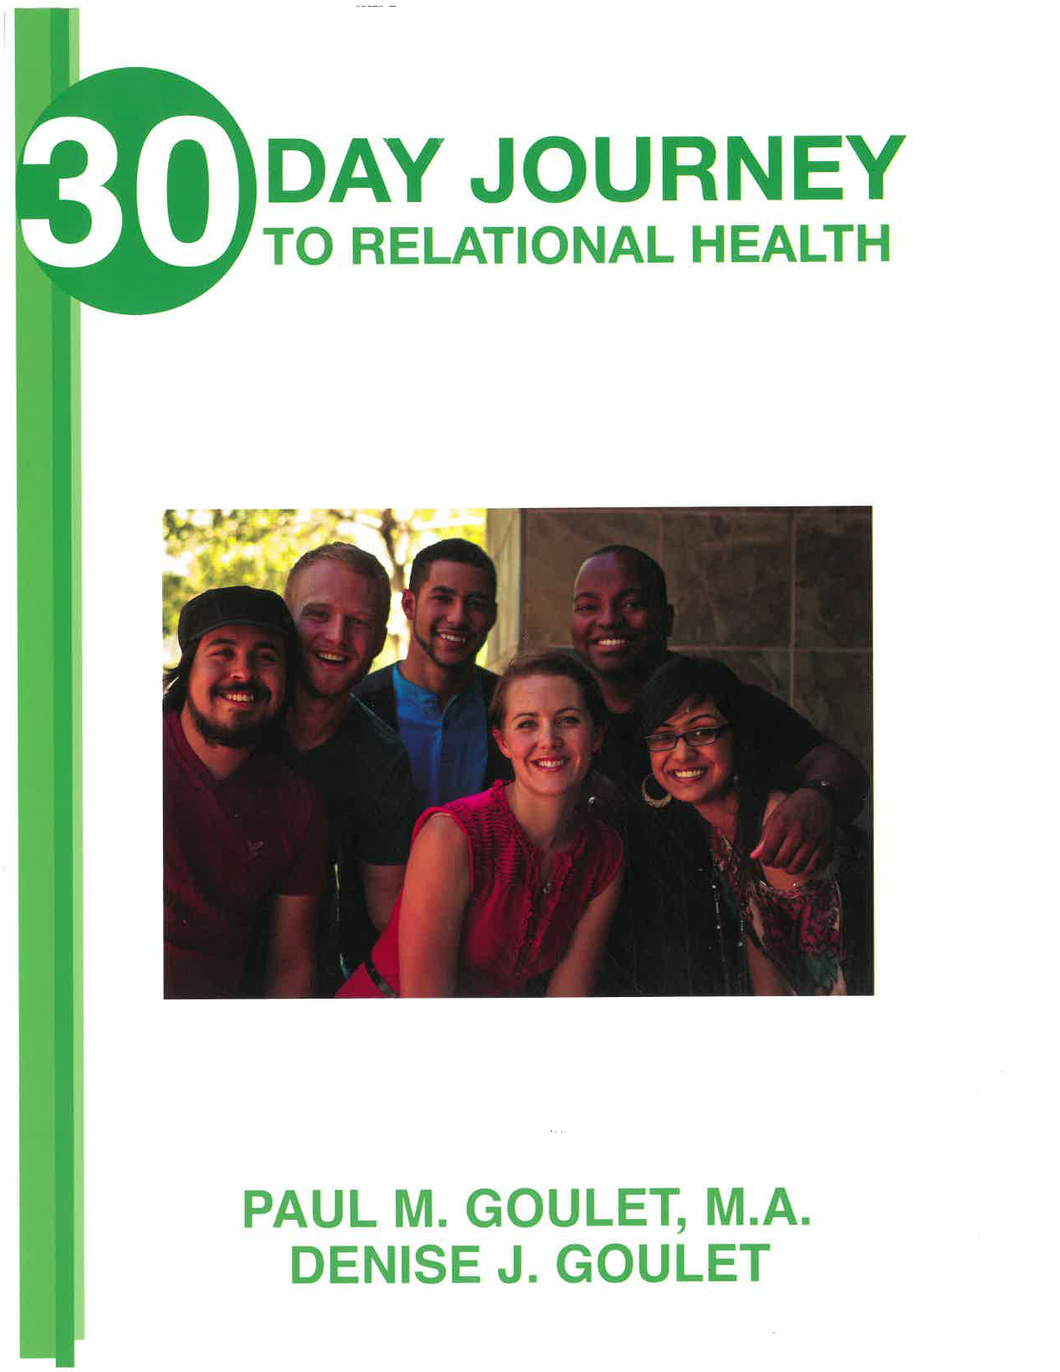 30 Day Journey to Relational Health